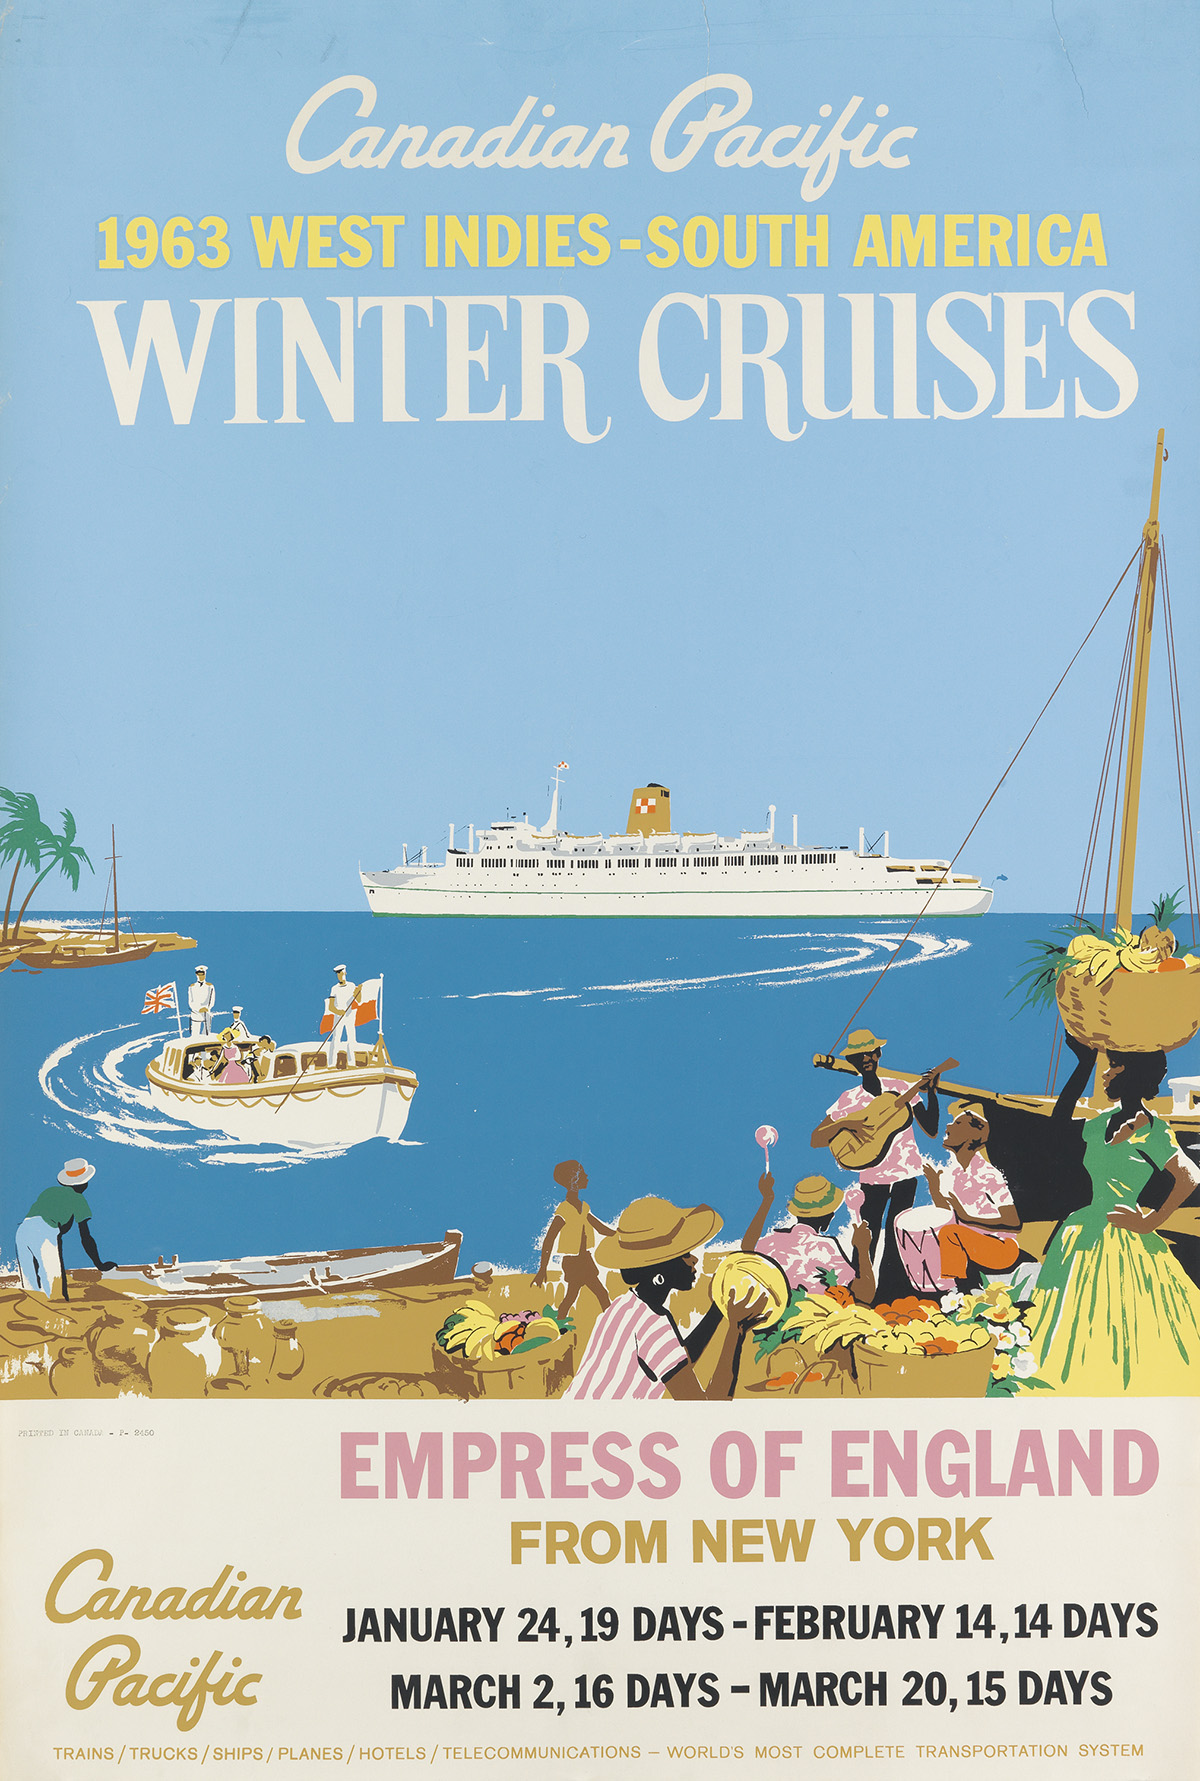 DESIGNER-UNKNOWN-CANADIAN-PACIFIC-WINTER-CRUISES--EMPRESS-OF